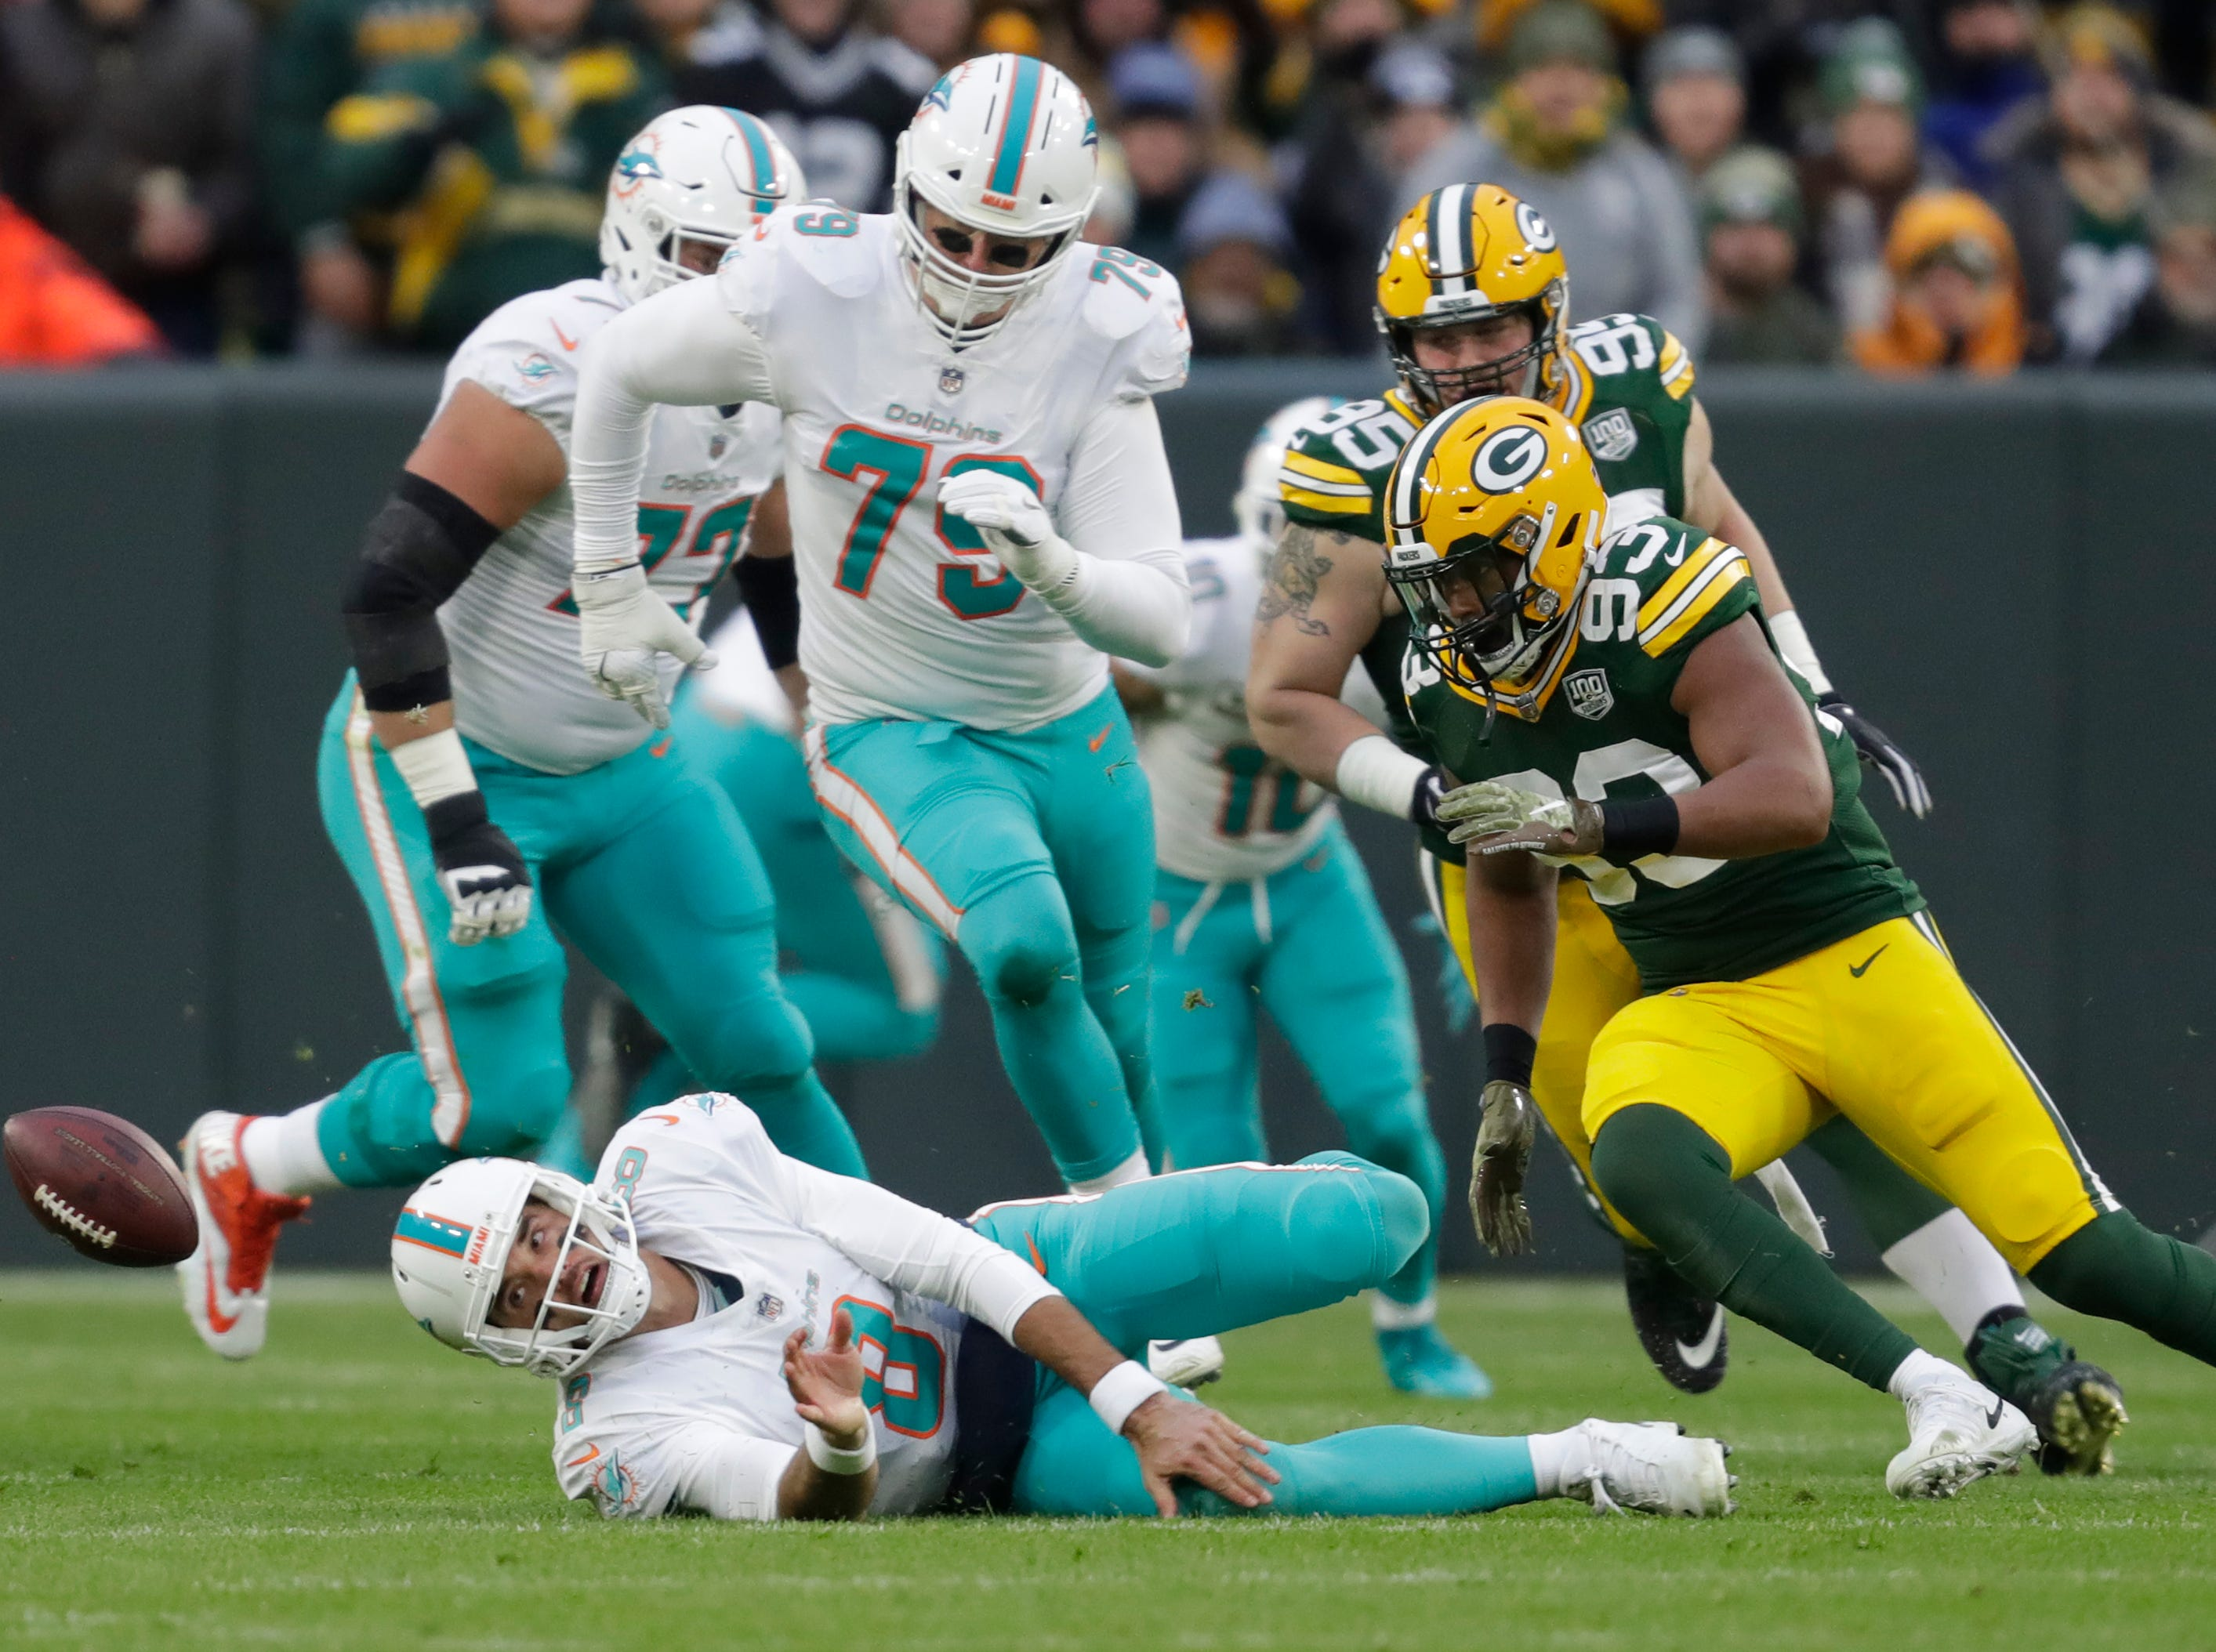 Green Bay Packers linebacker Reggie Gilbert (93) moves in to recover a fumble by Miami Dolphins quarterback Brock Osweiler (8) in the first quarter Sunday, November 11, 2018, Lambeau Field in Green Bay, Wis. 